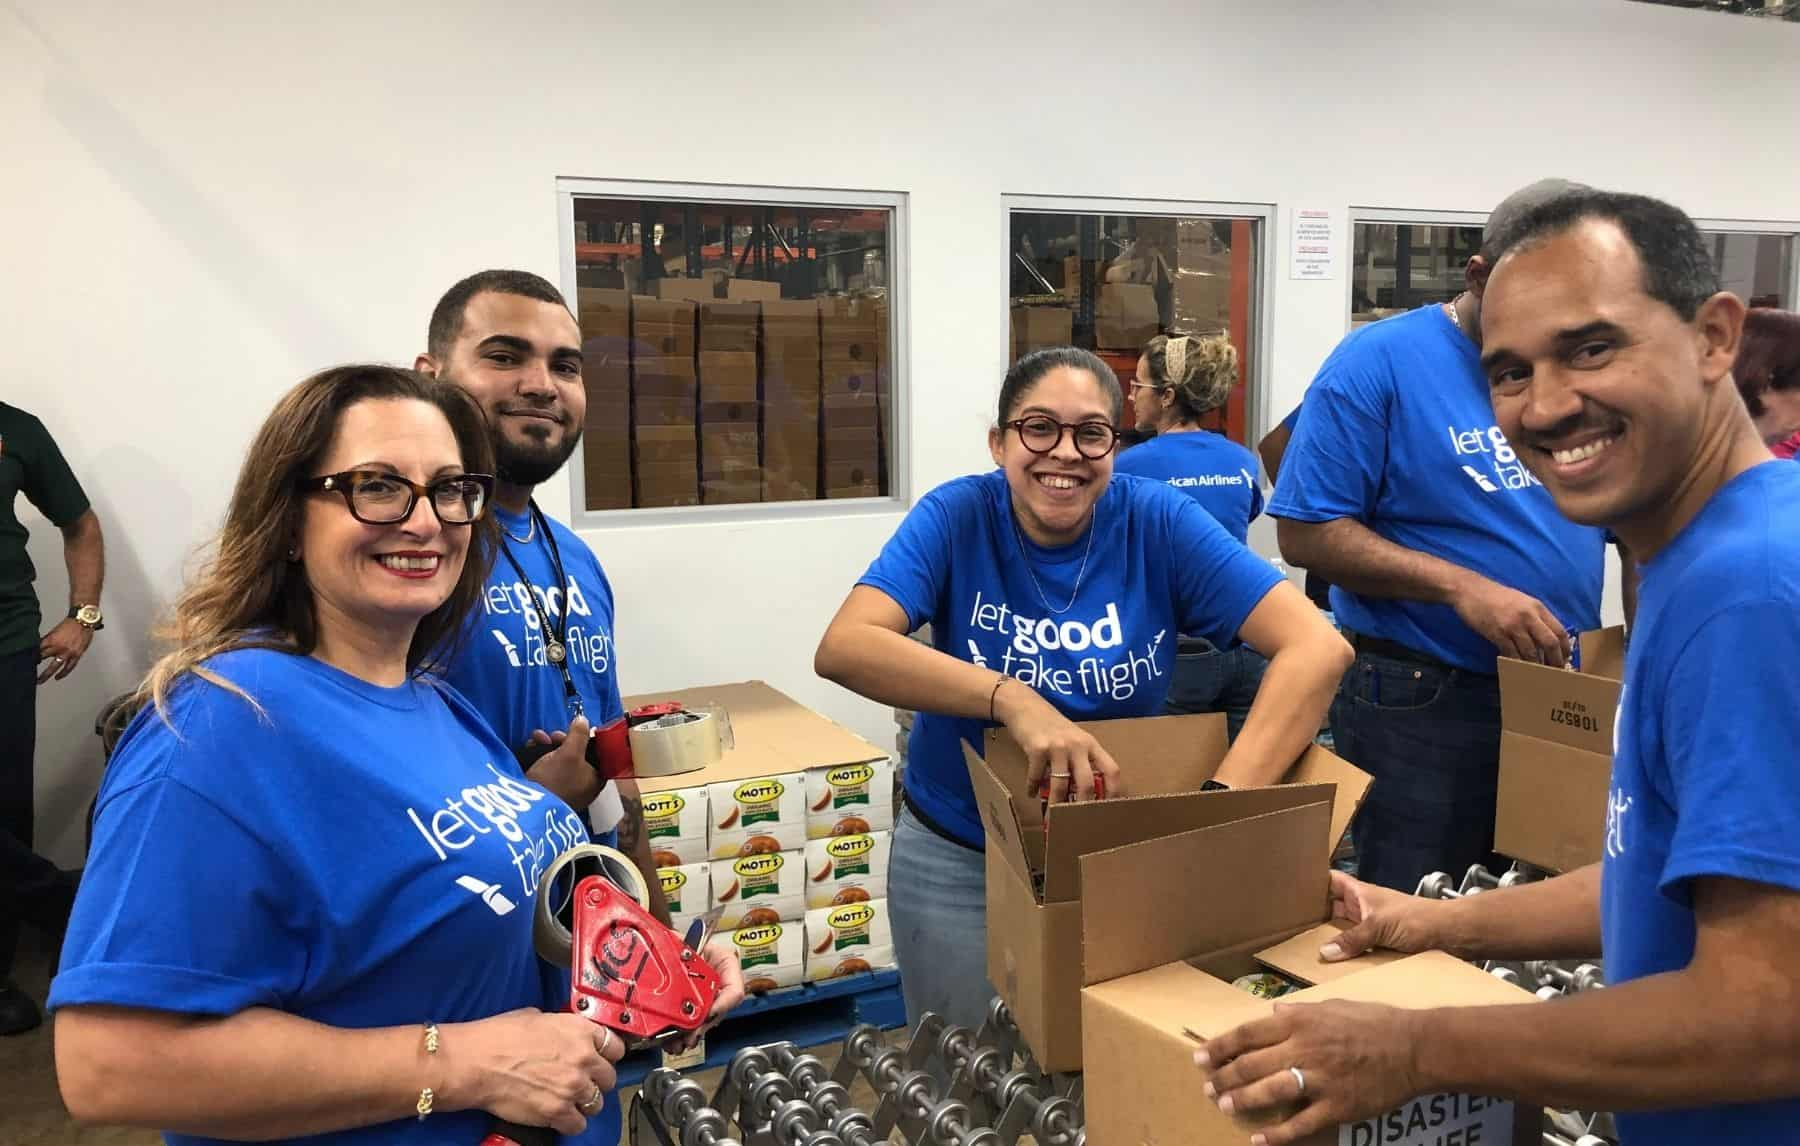 In March, San Juan team members volunteered at the local food bank to help pack more than 3,000 emergency food kits. Event was done in conjunction with Feeding America.